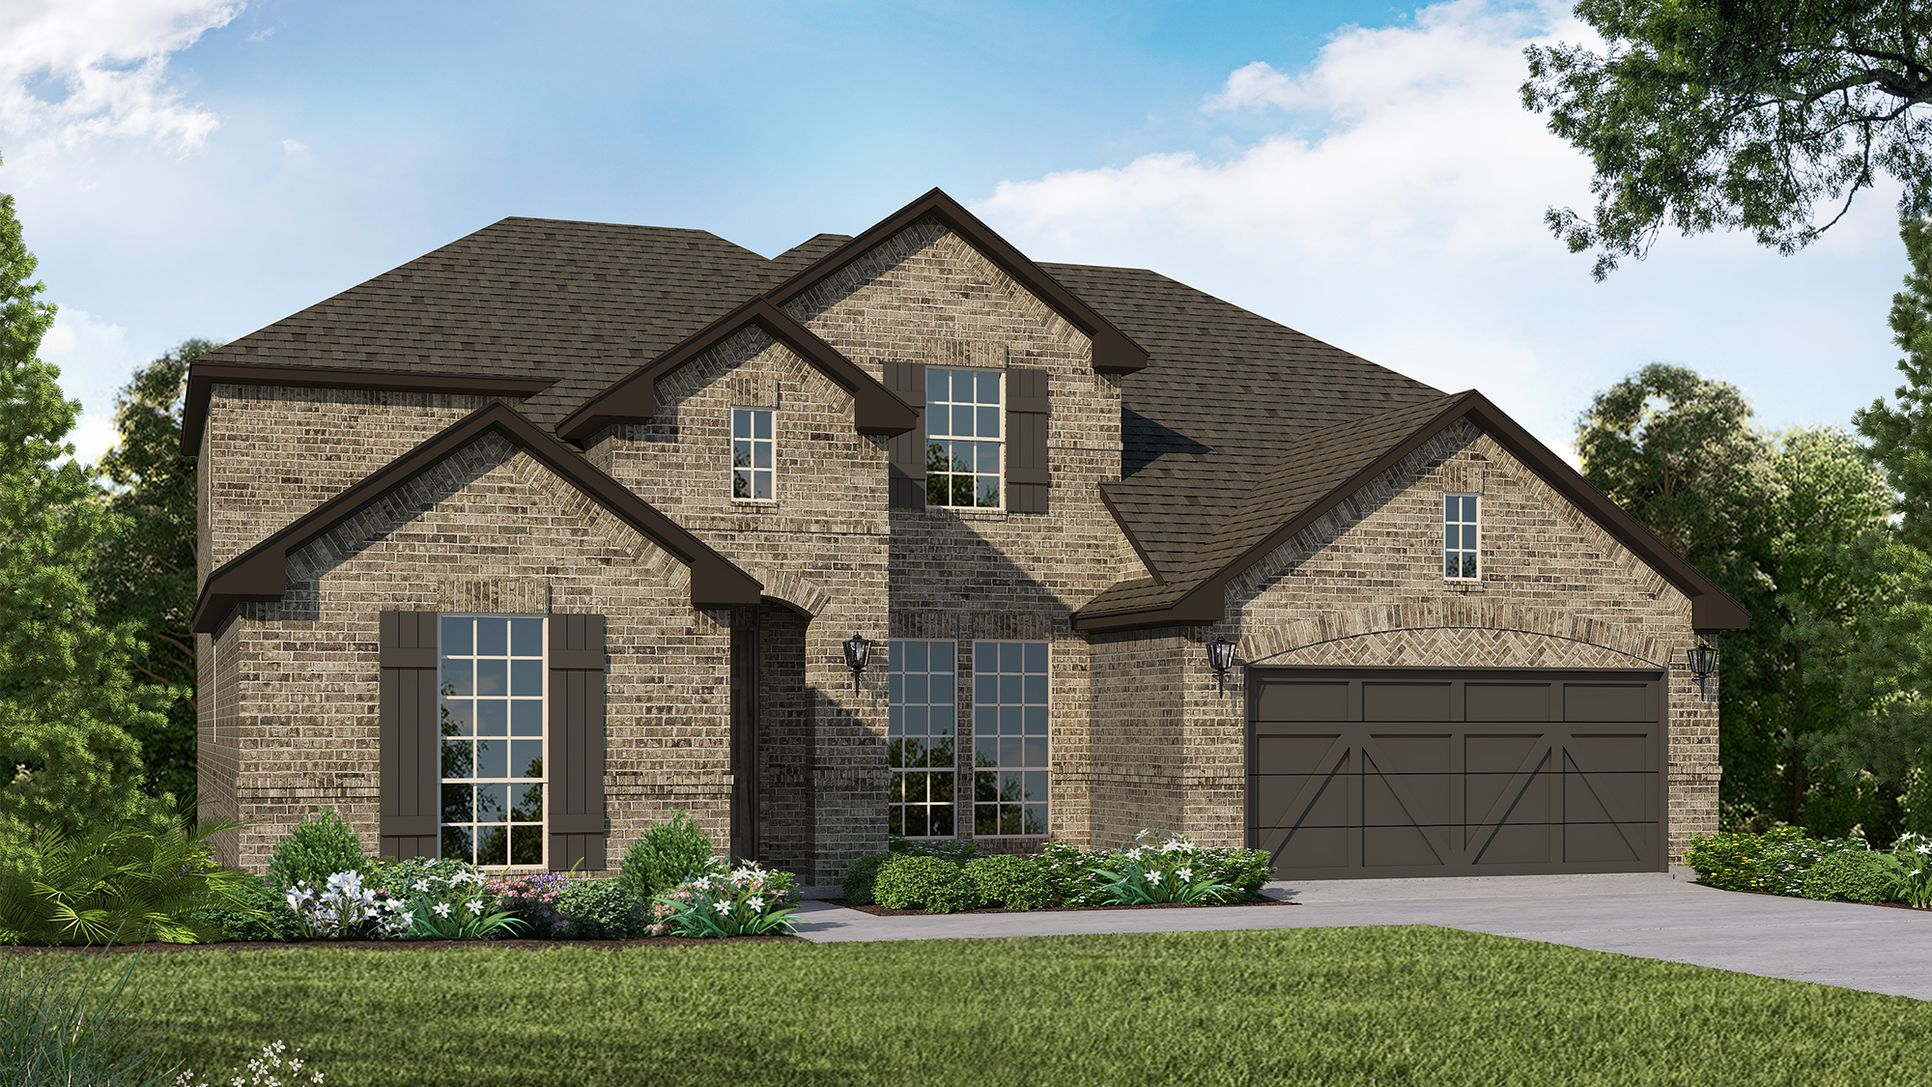 Exterior:Plan 1686 Elevation A by American Legend Homes